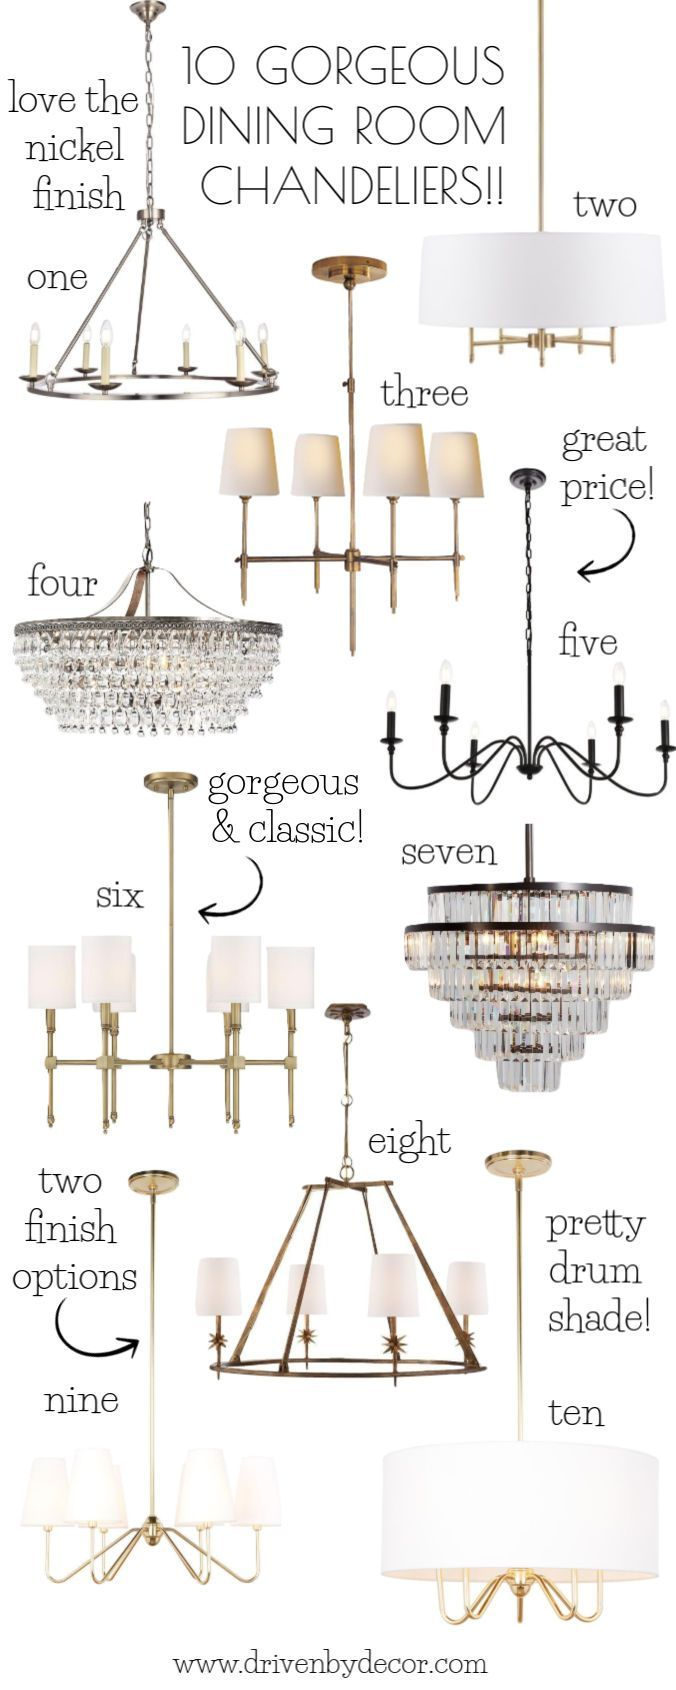 Dining Room Chandeliers My Ten Favorites Driven By Decor The Blog Pinterest And